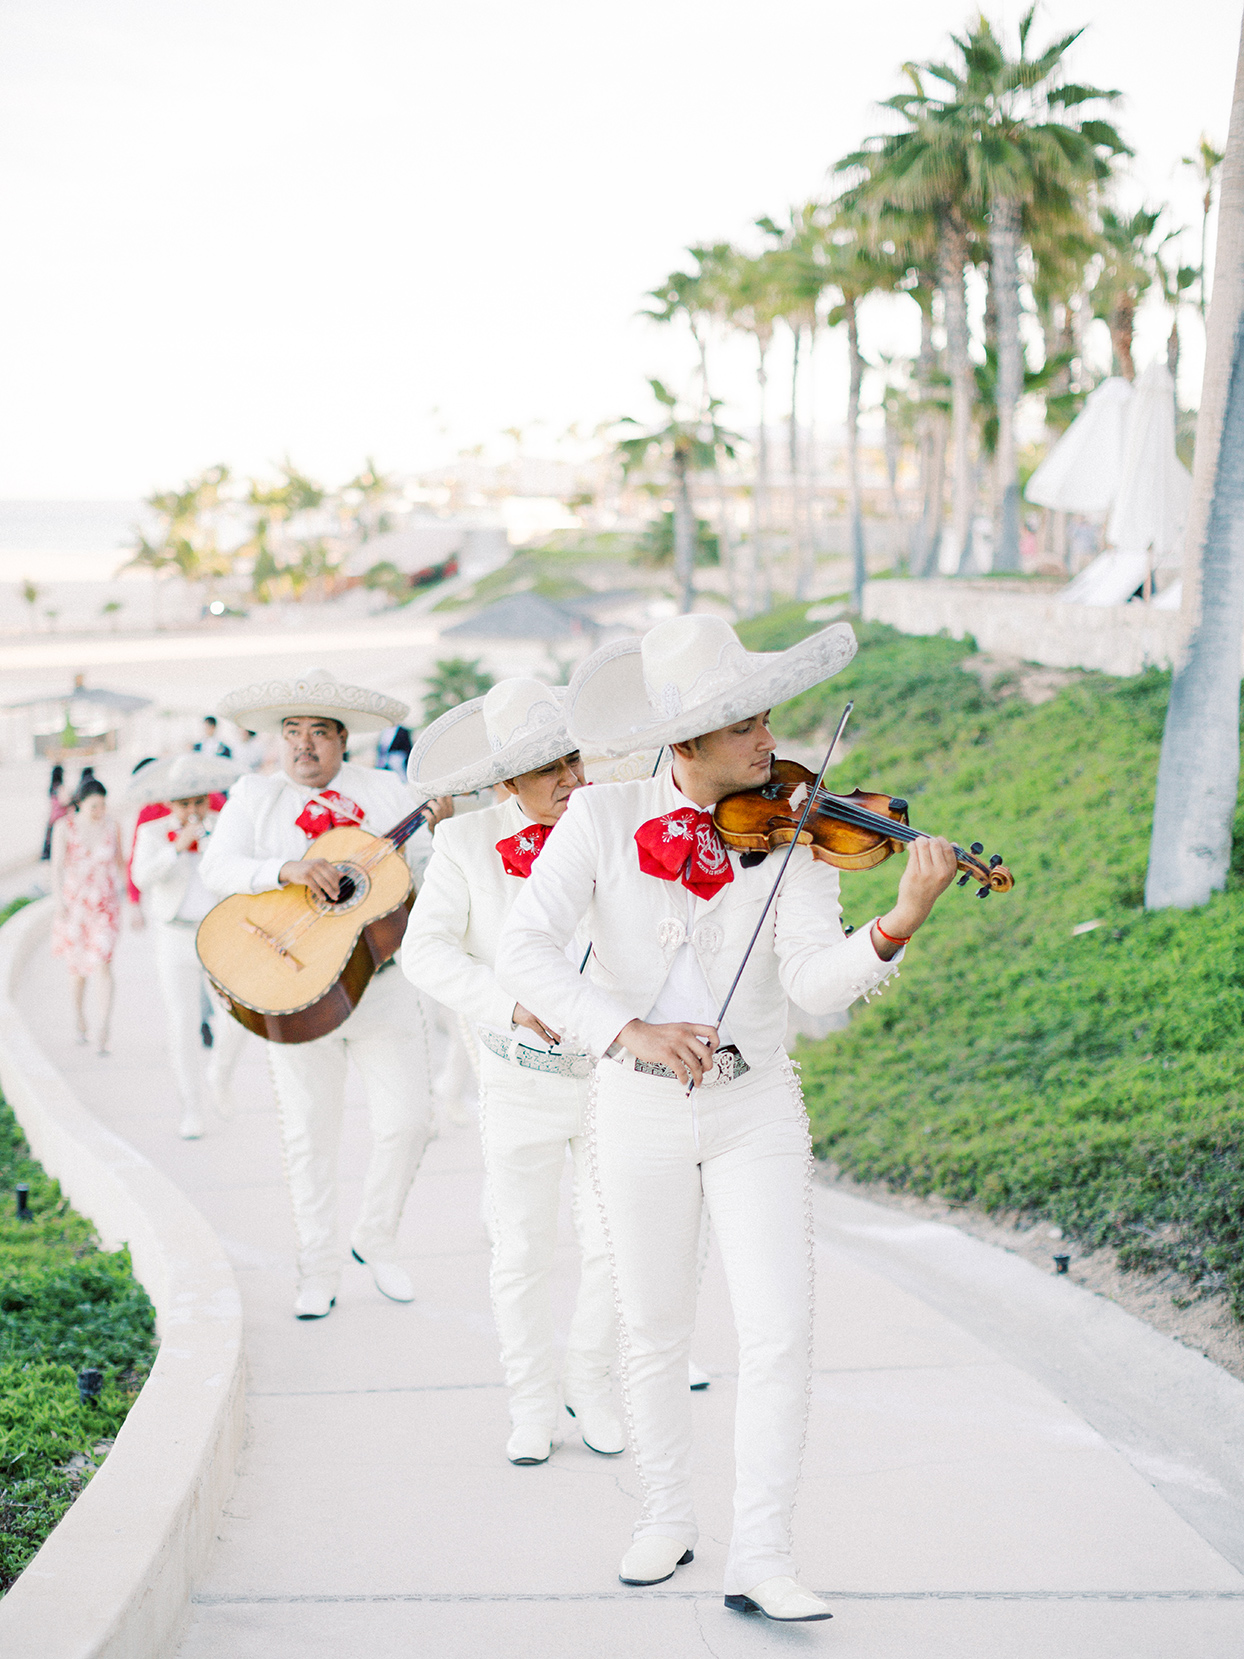 kirsten deran wedding mariachi band playing on walkway